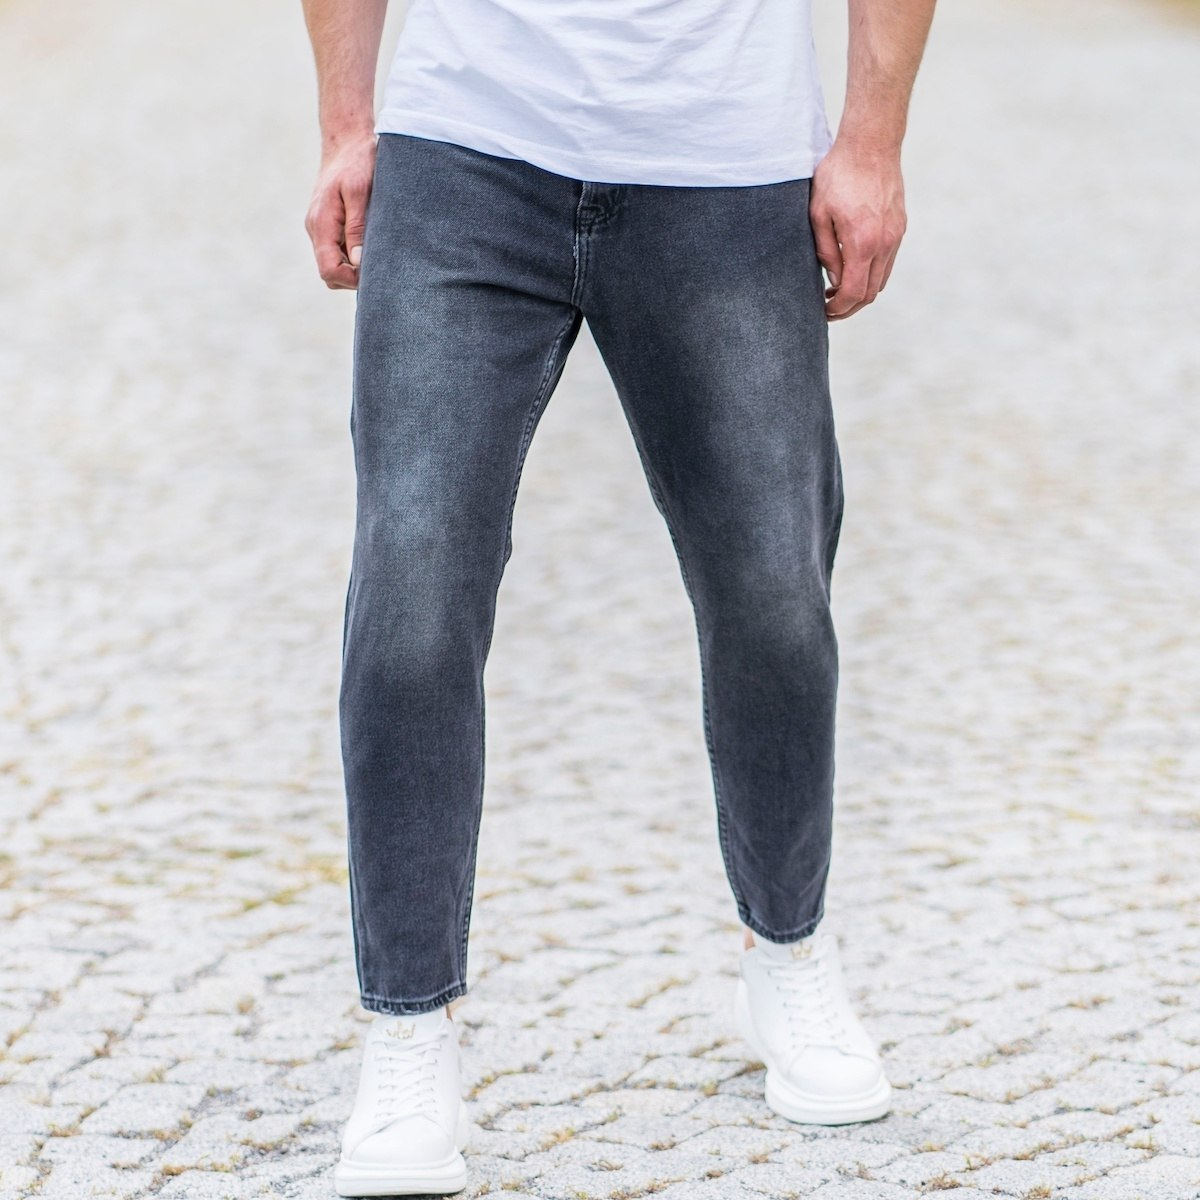 Men's Loose Fit Jeans In Anthracite